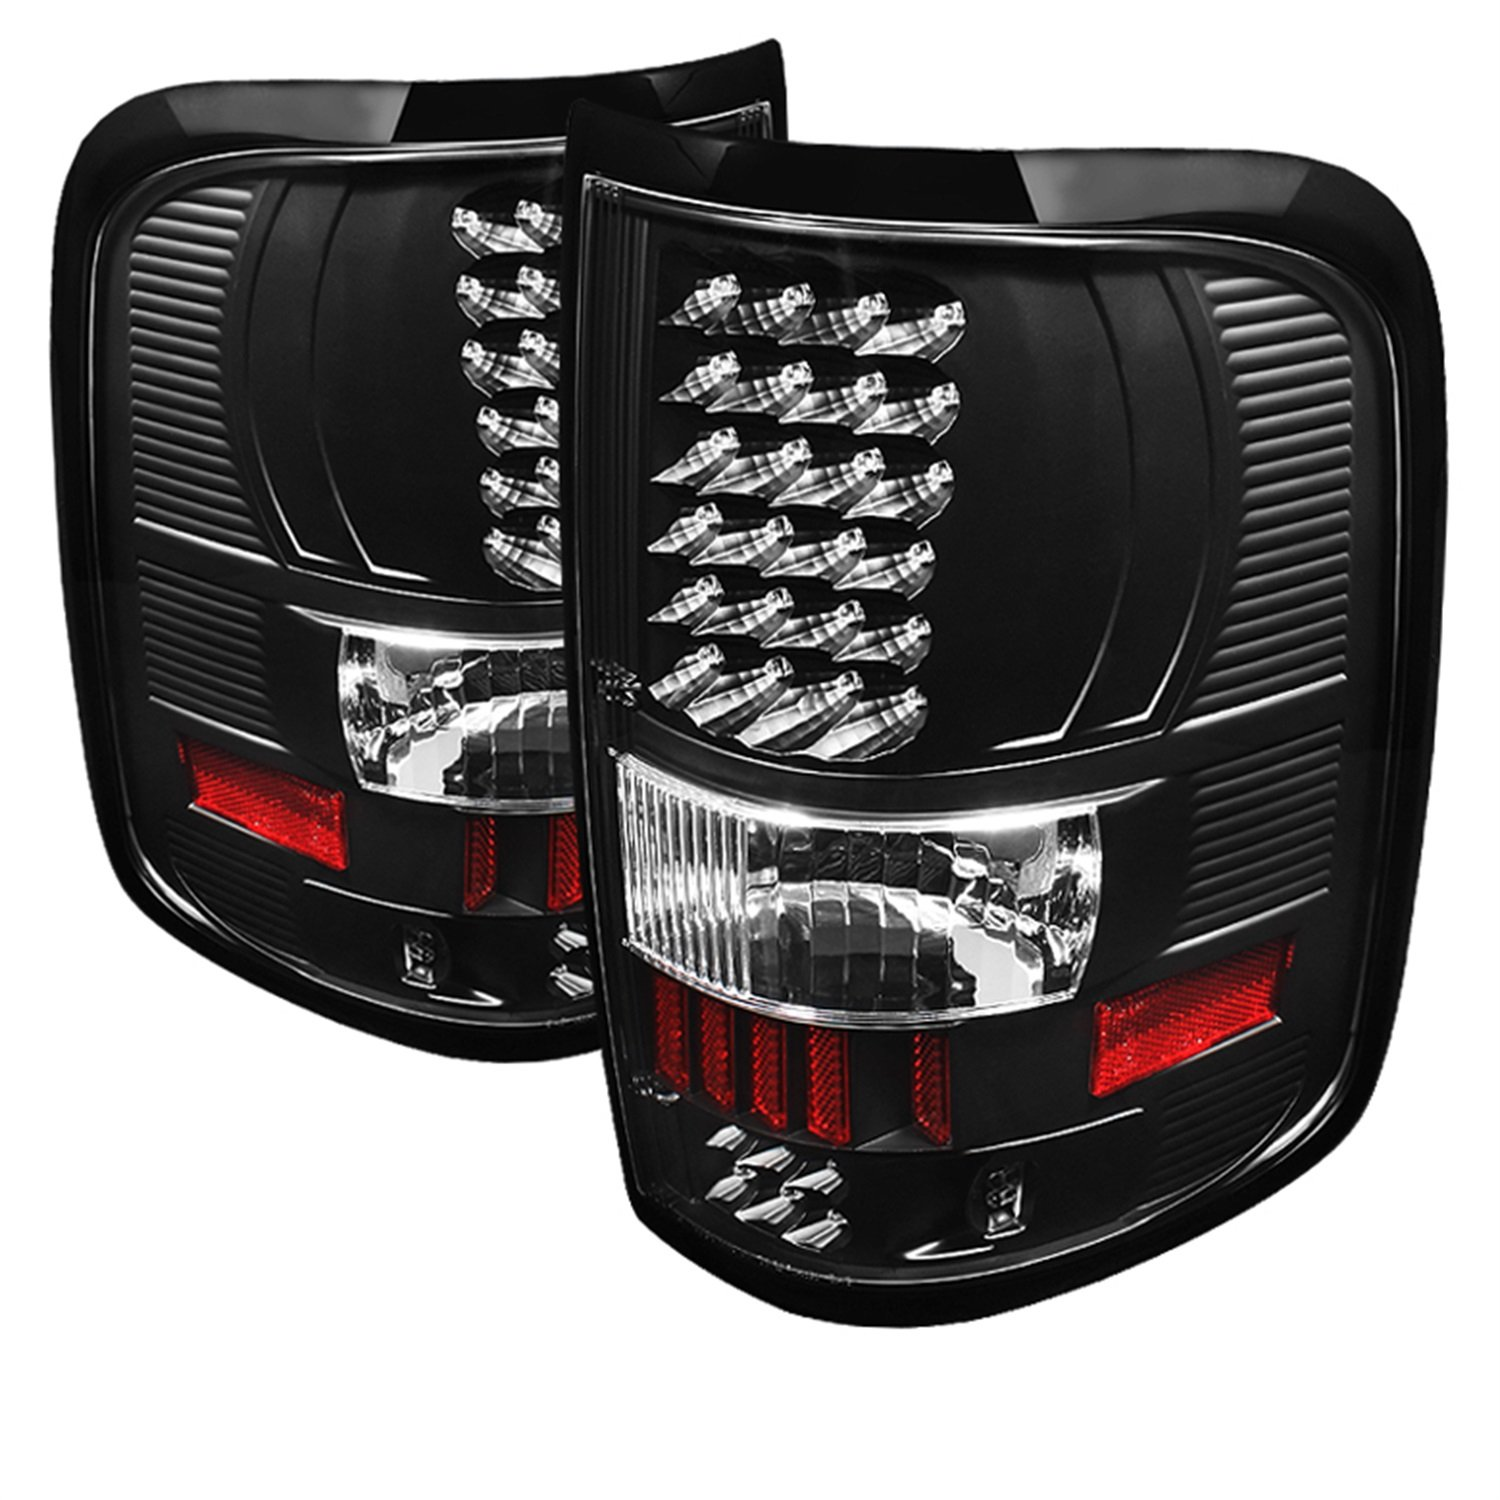 71FpZPH4KpL._SL1500_ amazon com spyder auto alt on ff15004 led bk ford f150 styleside 08 f150 tail light wiring diagram at eliteediting.co